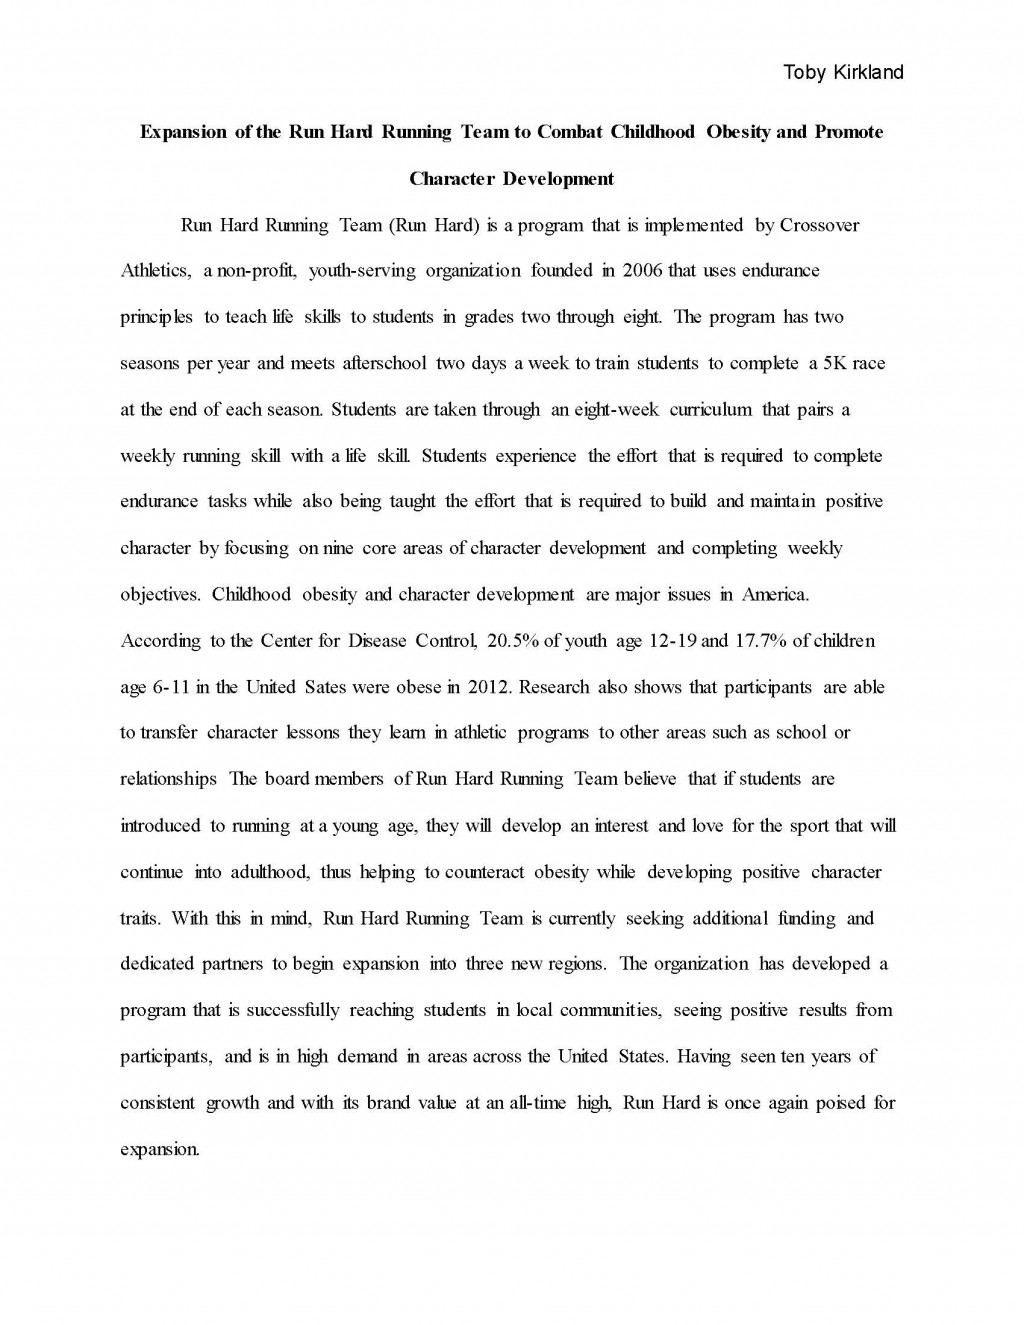 001 Toby Kirkland Final Grant Proposal Page 01 Research Paper Childhood Obesity Unique Example Large